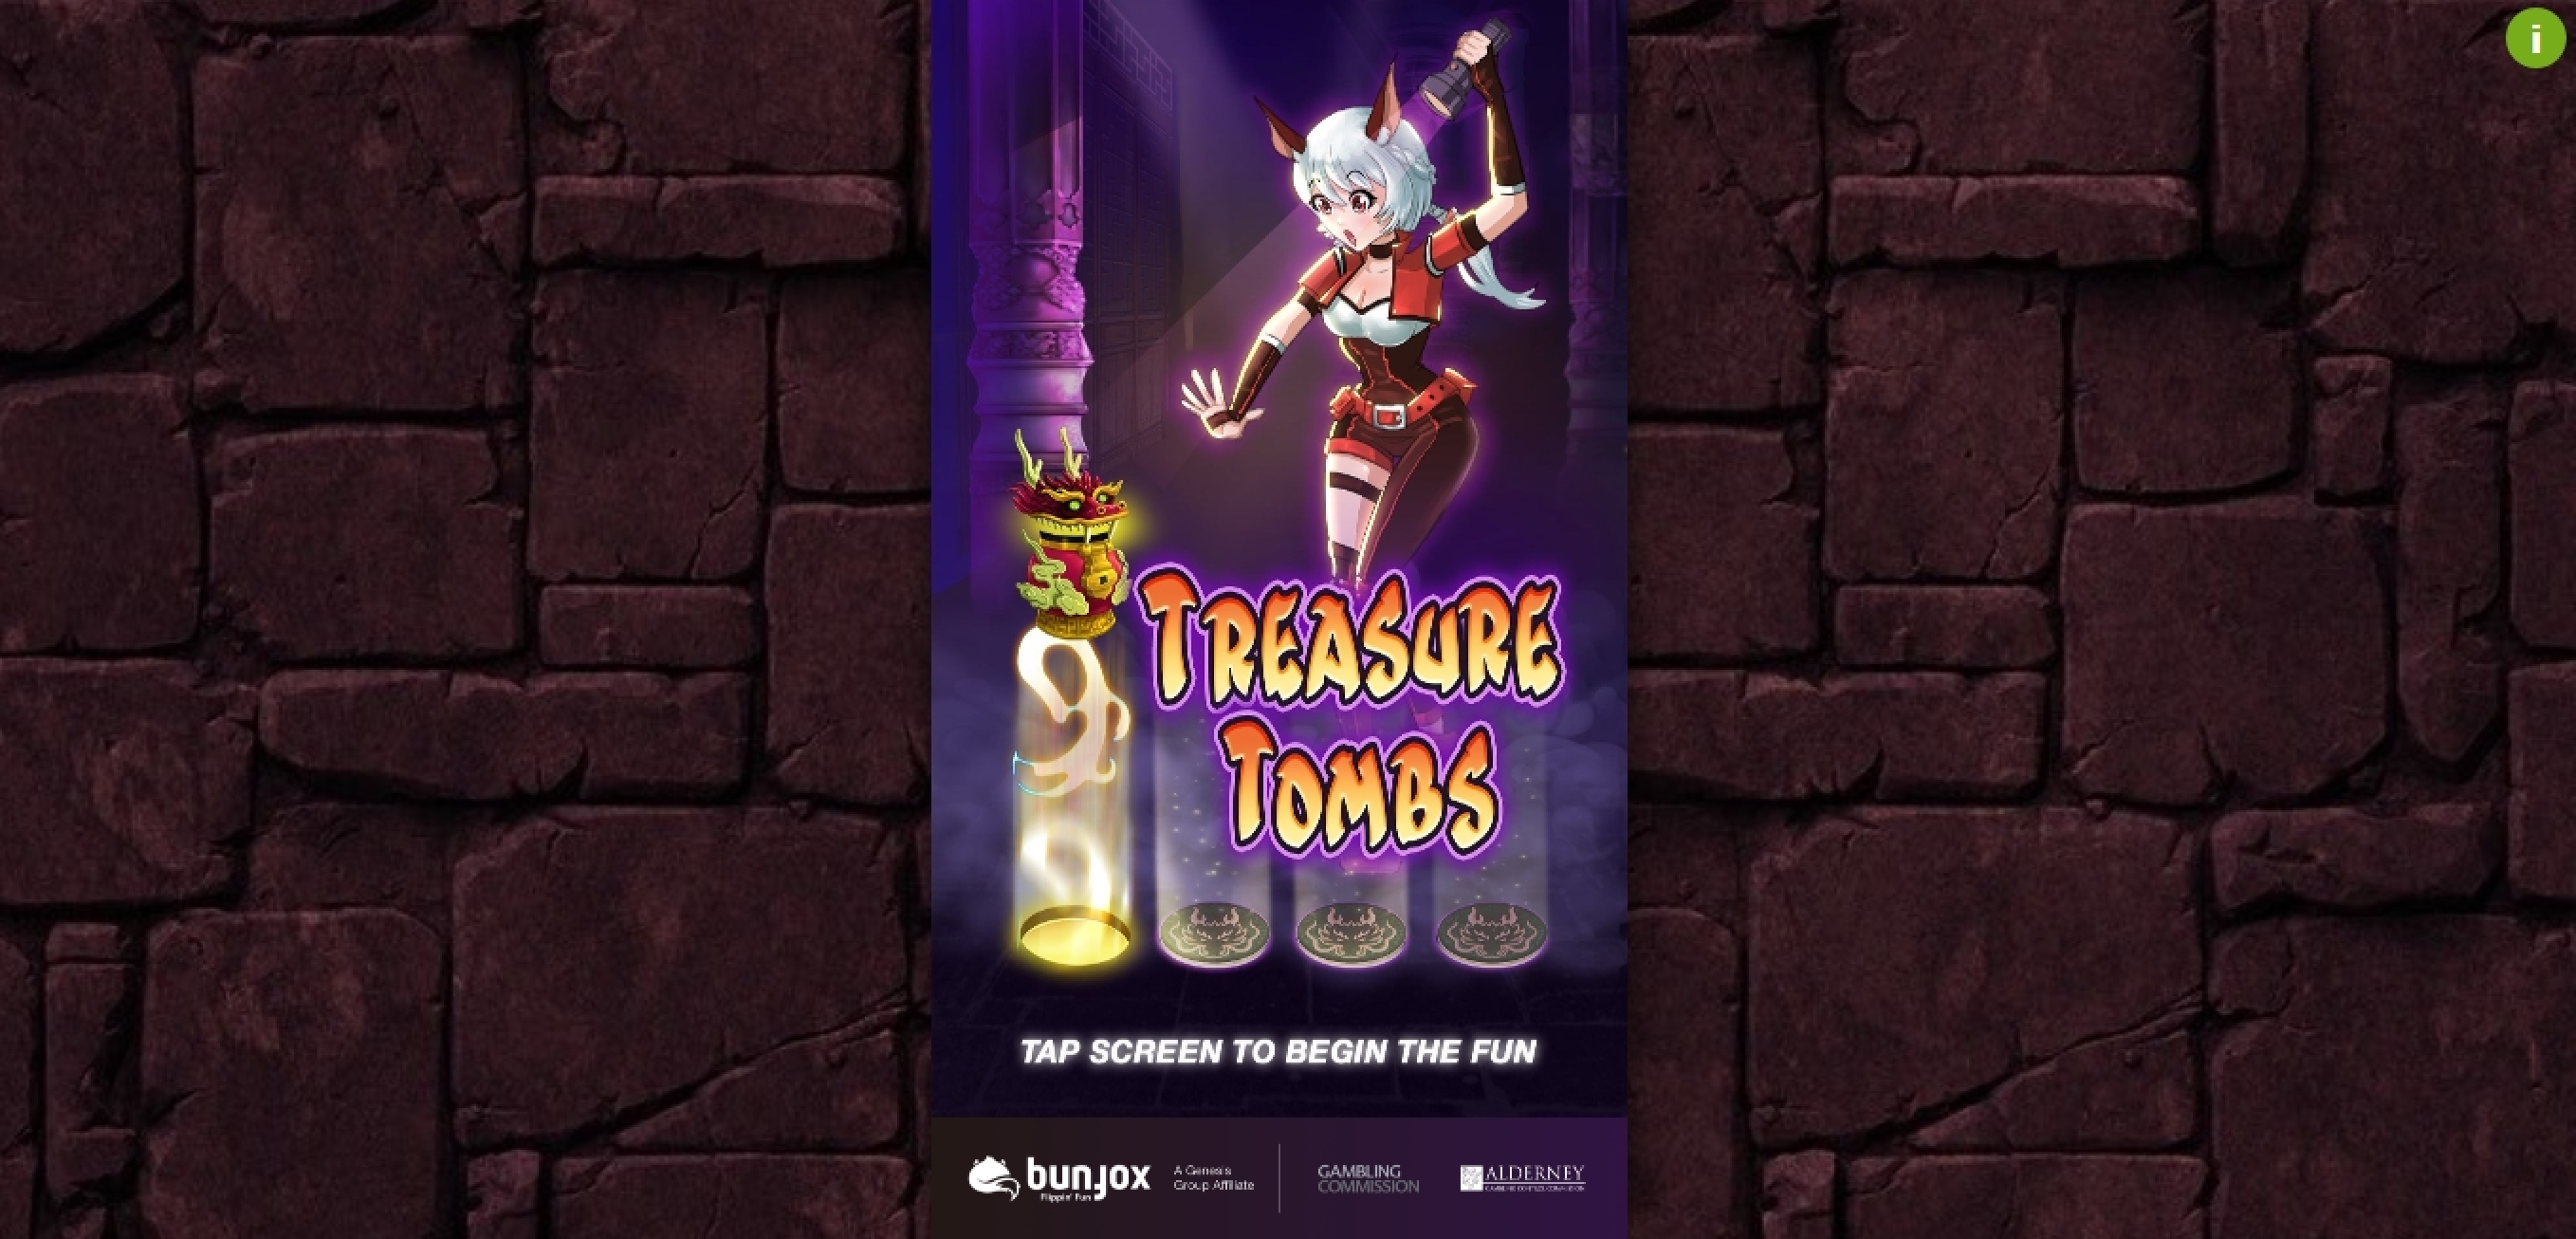 Play Treasure Tombs Free Casino Slot Game by Bunfox Games